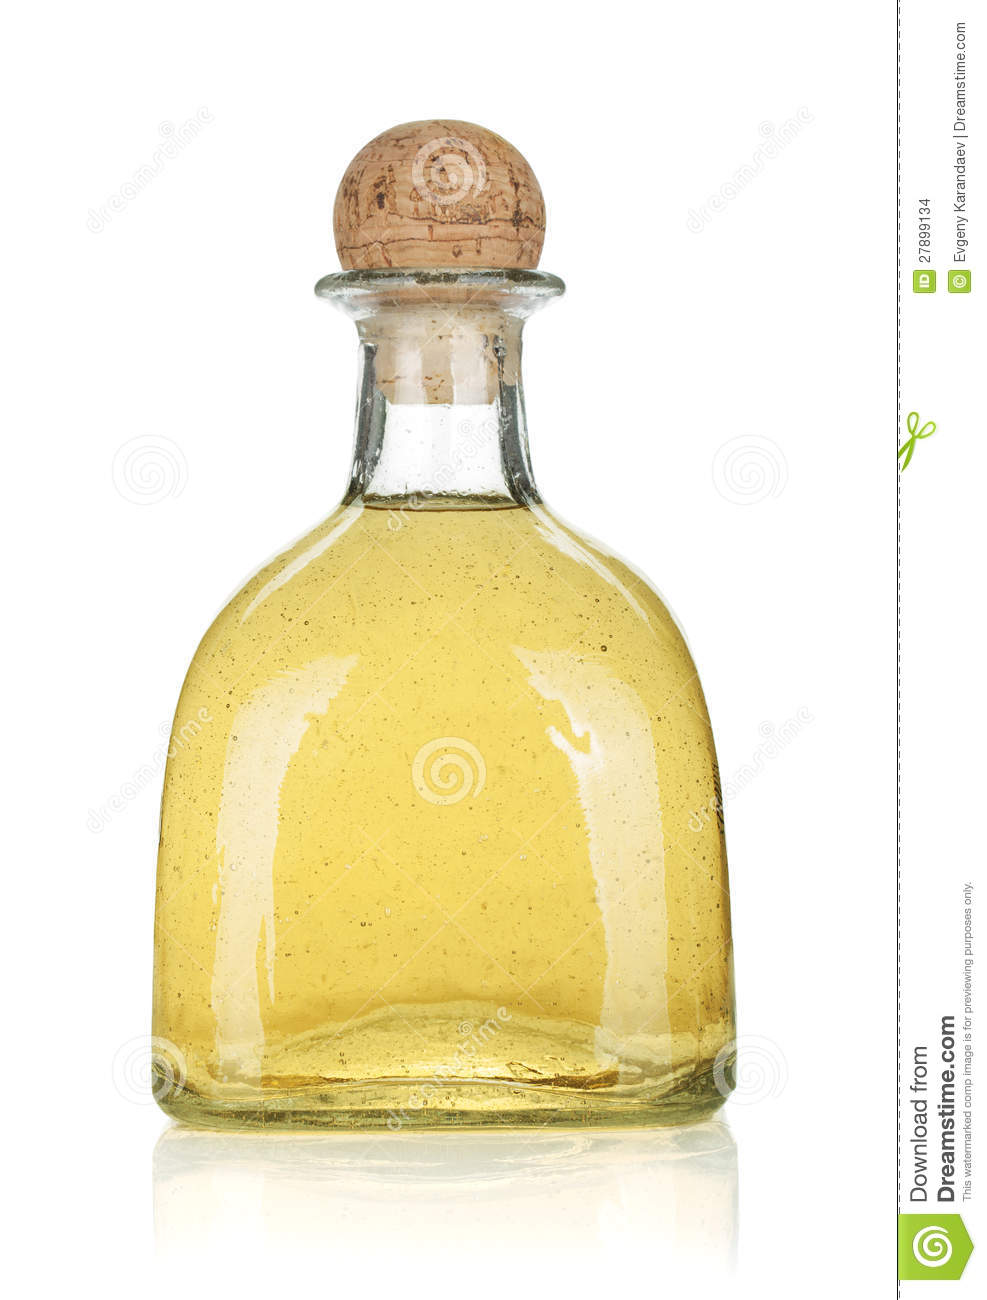 bottle of gold tequila stock photo image of mexico shot